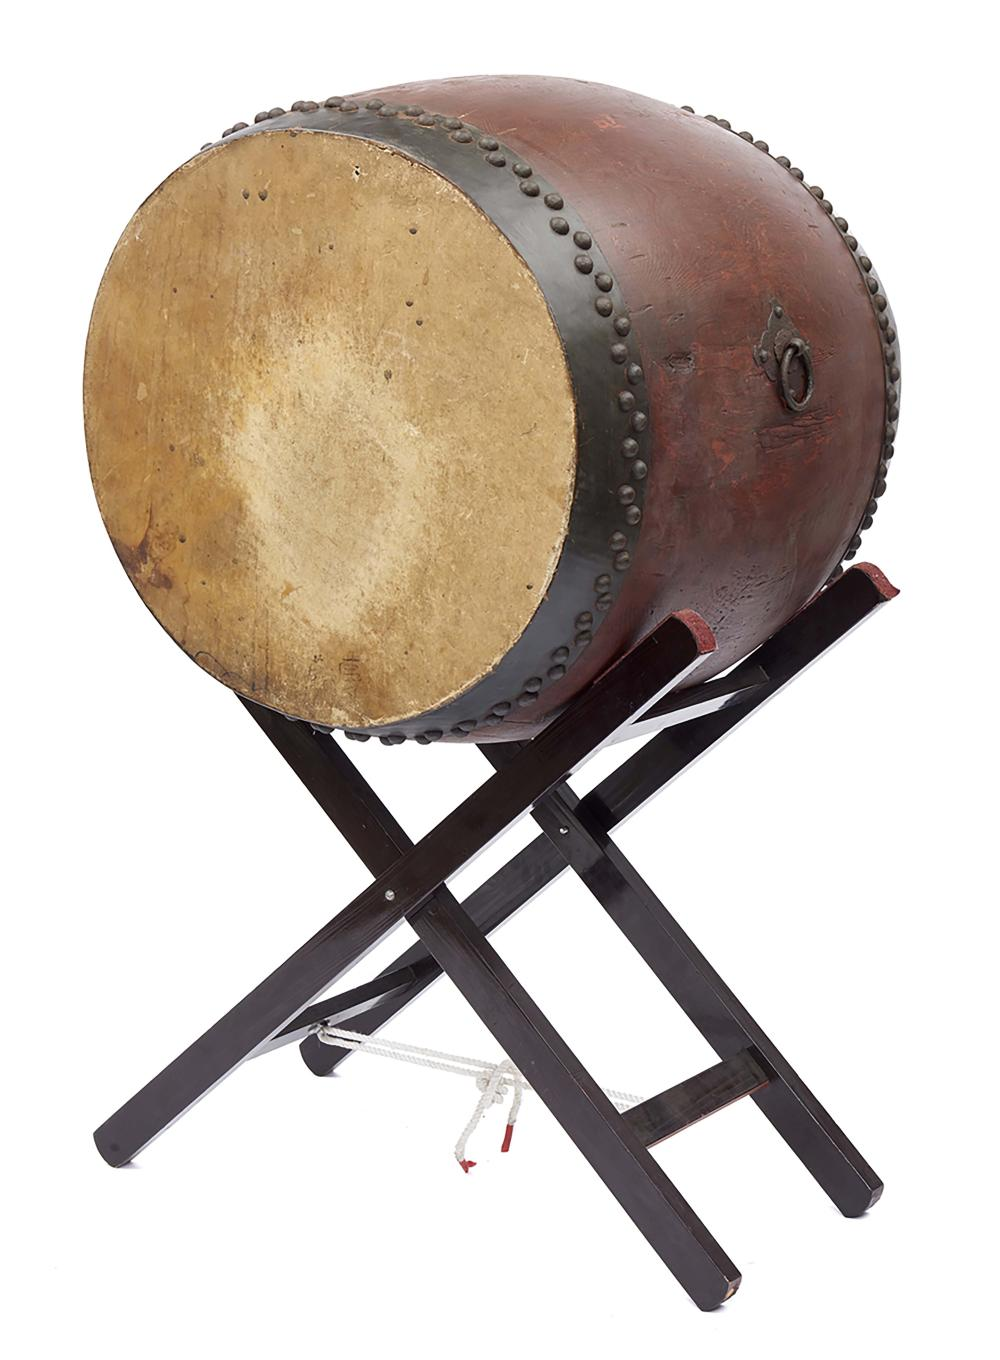 Very large keyaki-wooden taiko drum on a more recent foldable stand. Meiji